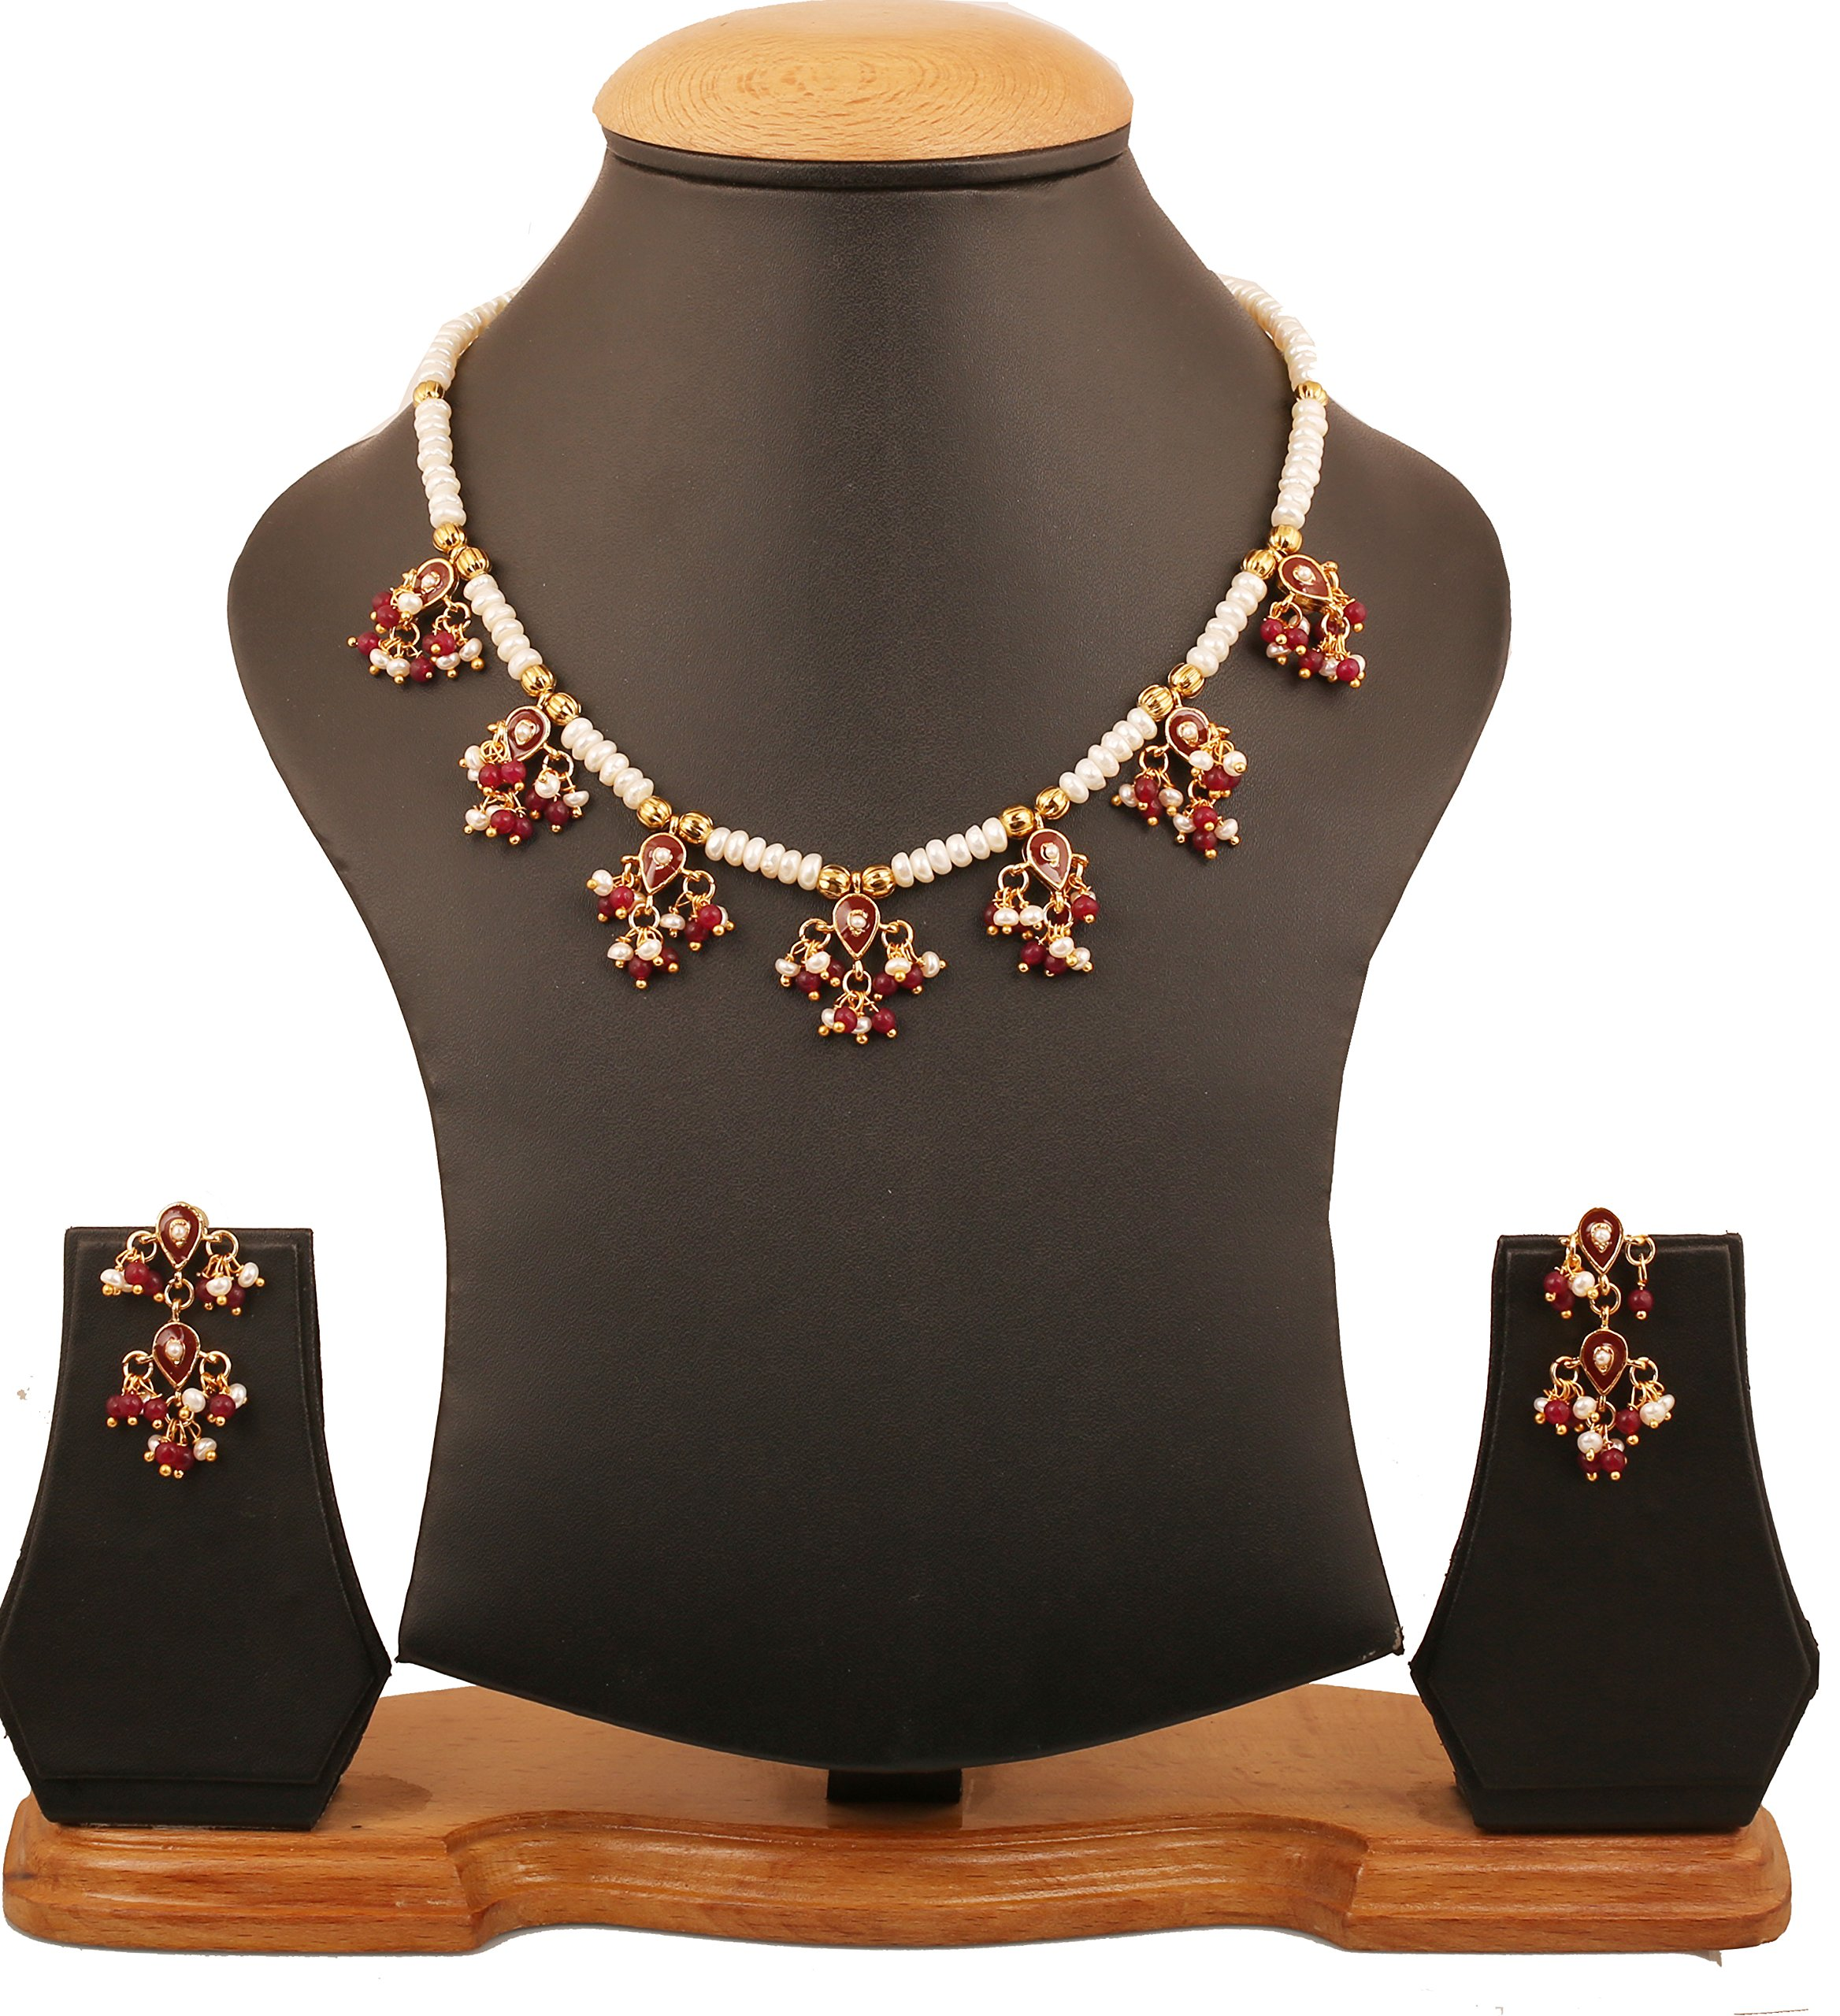 Touchstone''Royal Meena Collection'' Indian Bollywood statement traditional enamel Meenakari jadau finely strung faux pearls beads jewelry necklace set for women in gold tone.